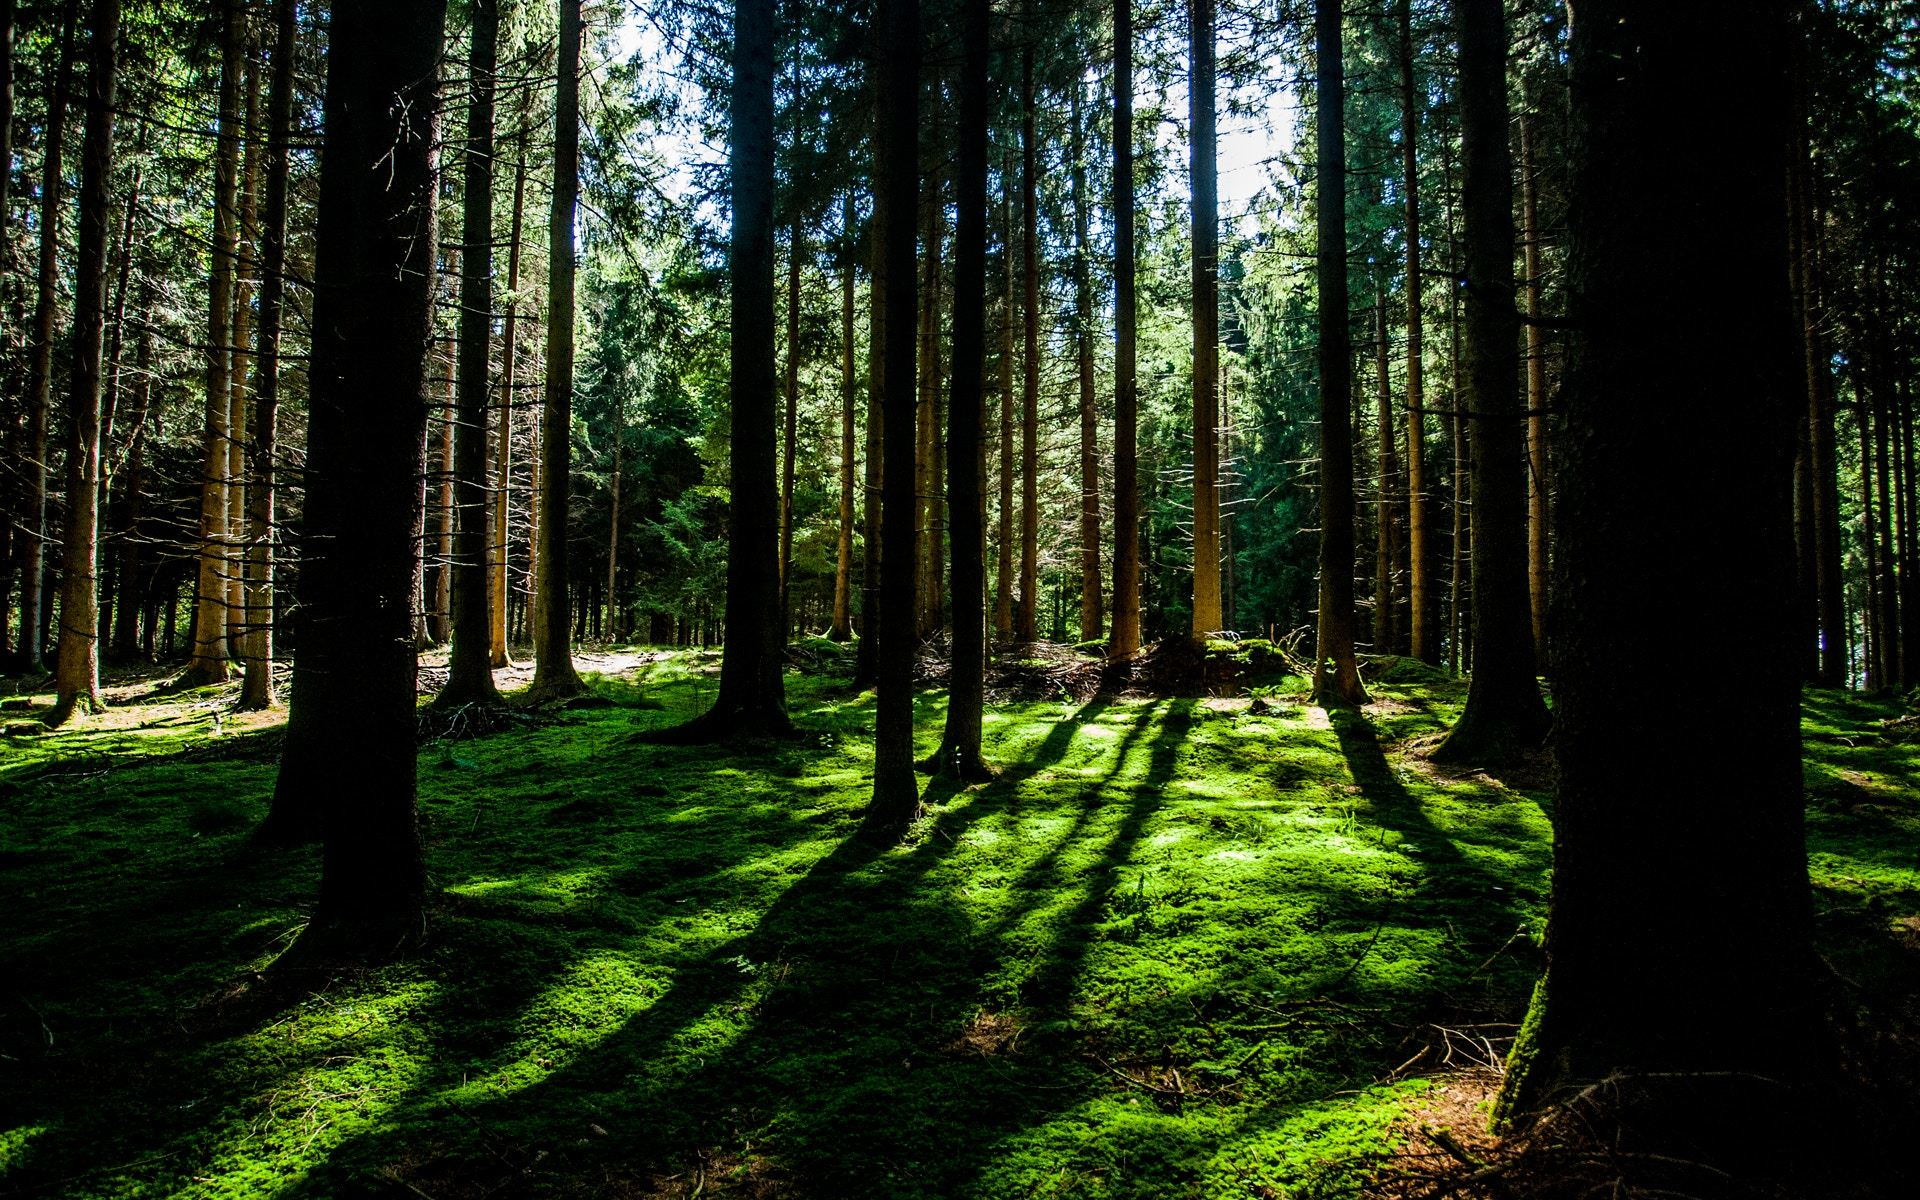 """Tree shadows on moss"" by Sven Schlager on Unsplash"